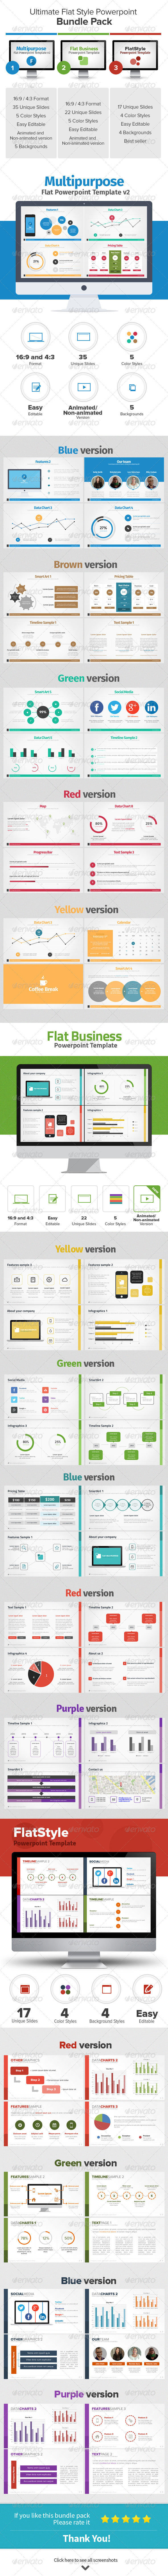 GraphicRiver Ultimate Flat Style PowerPoint Bundle Pack 8208988